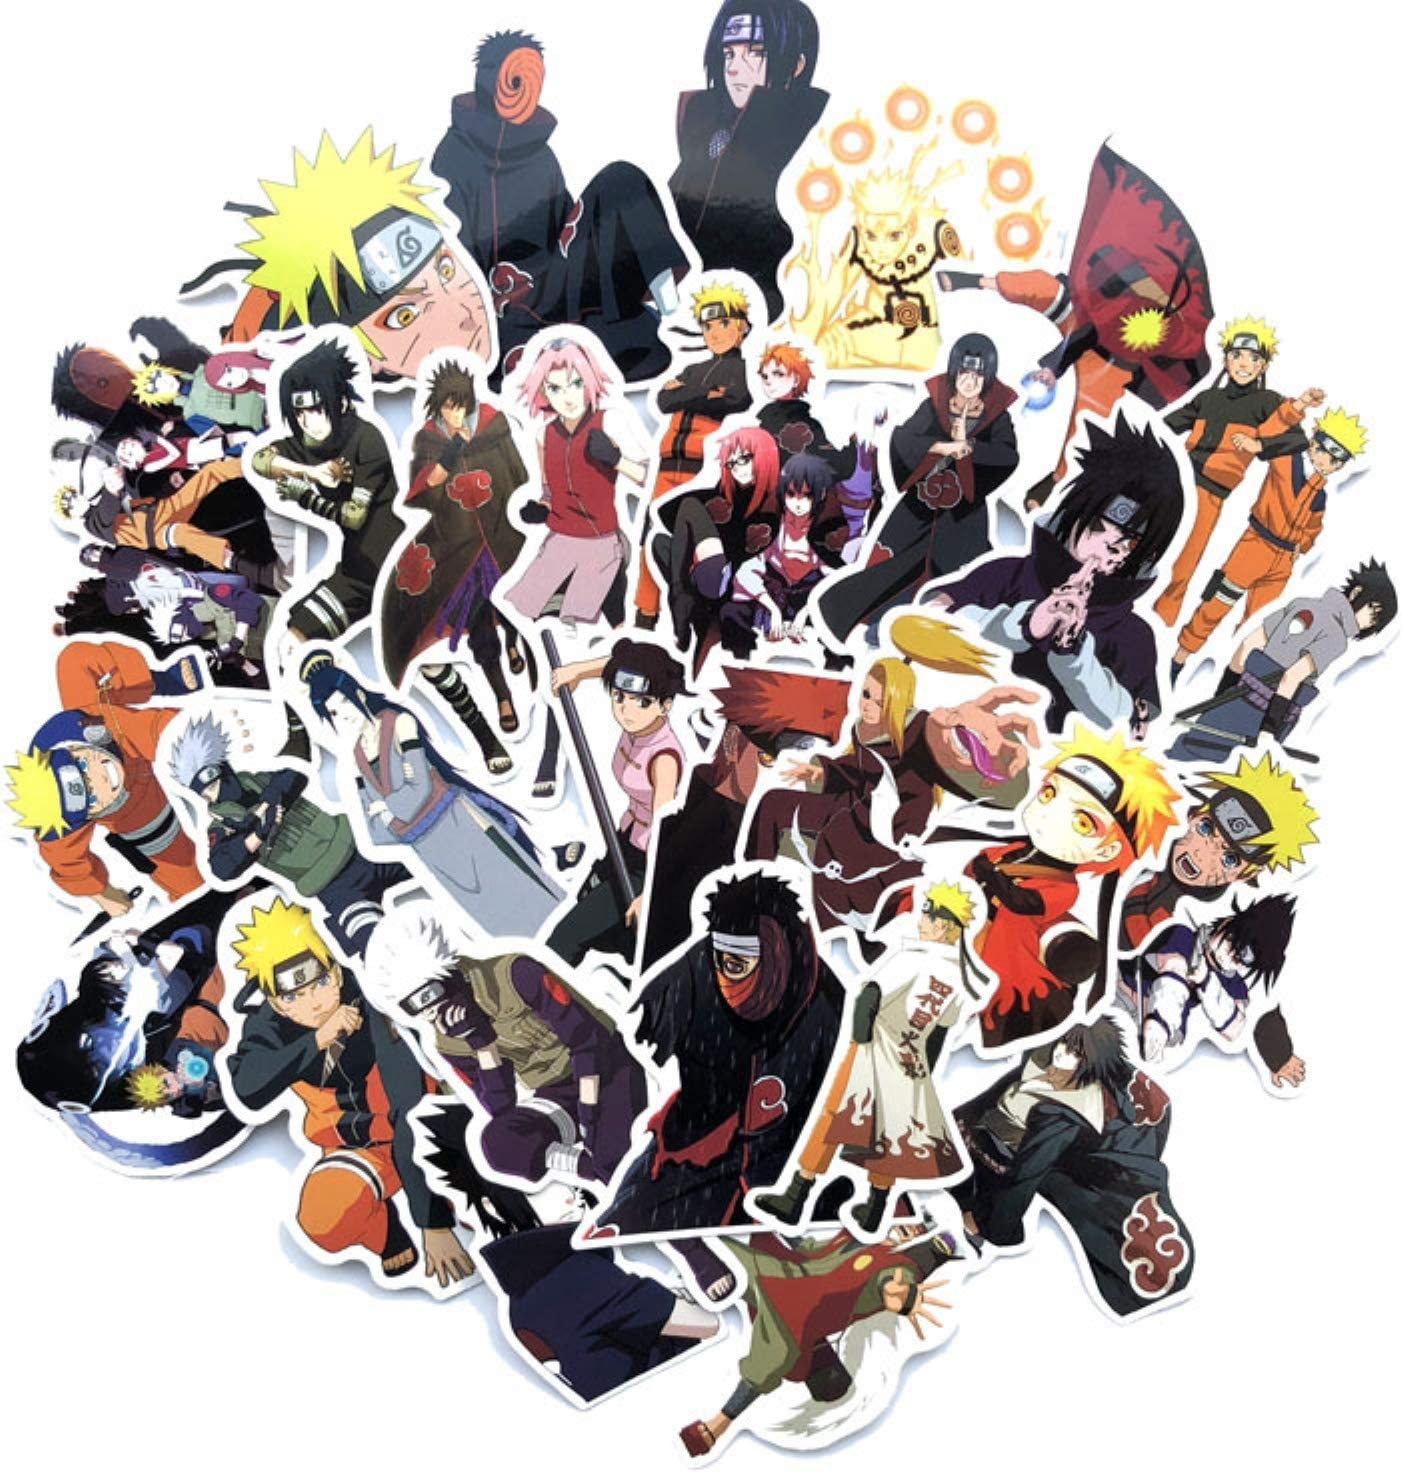 Naruto Sticker Pack[63pcs], Anime Vinyl Sticker for Nintendo Switch Laptop Water Bottle Bike Car Motorcycle Bumper Luggage Skateboard Graffiti Best Gift for Children